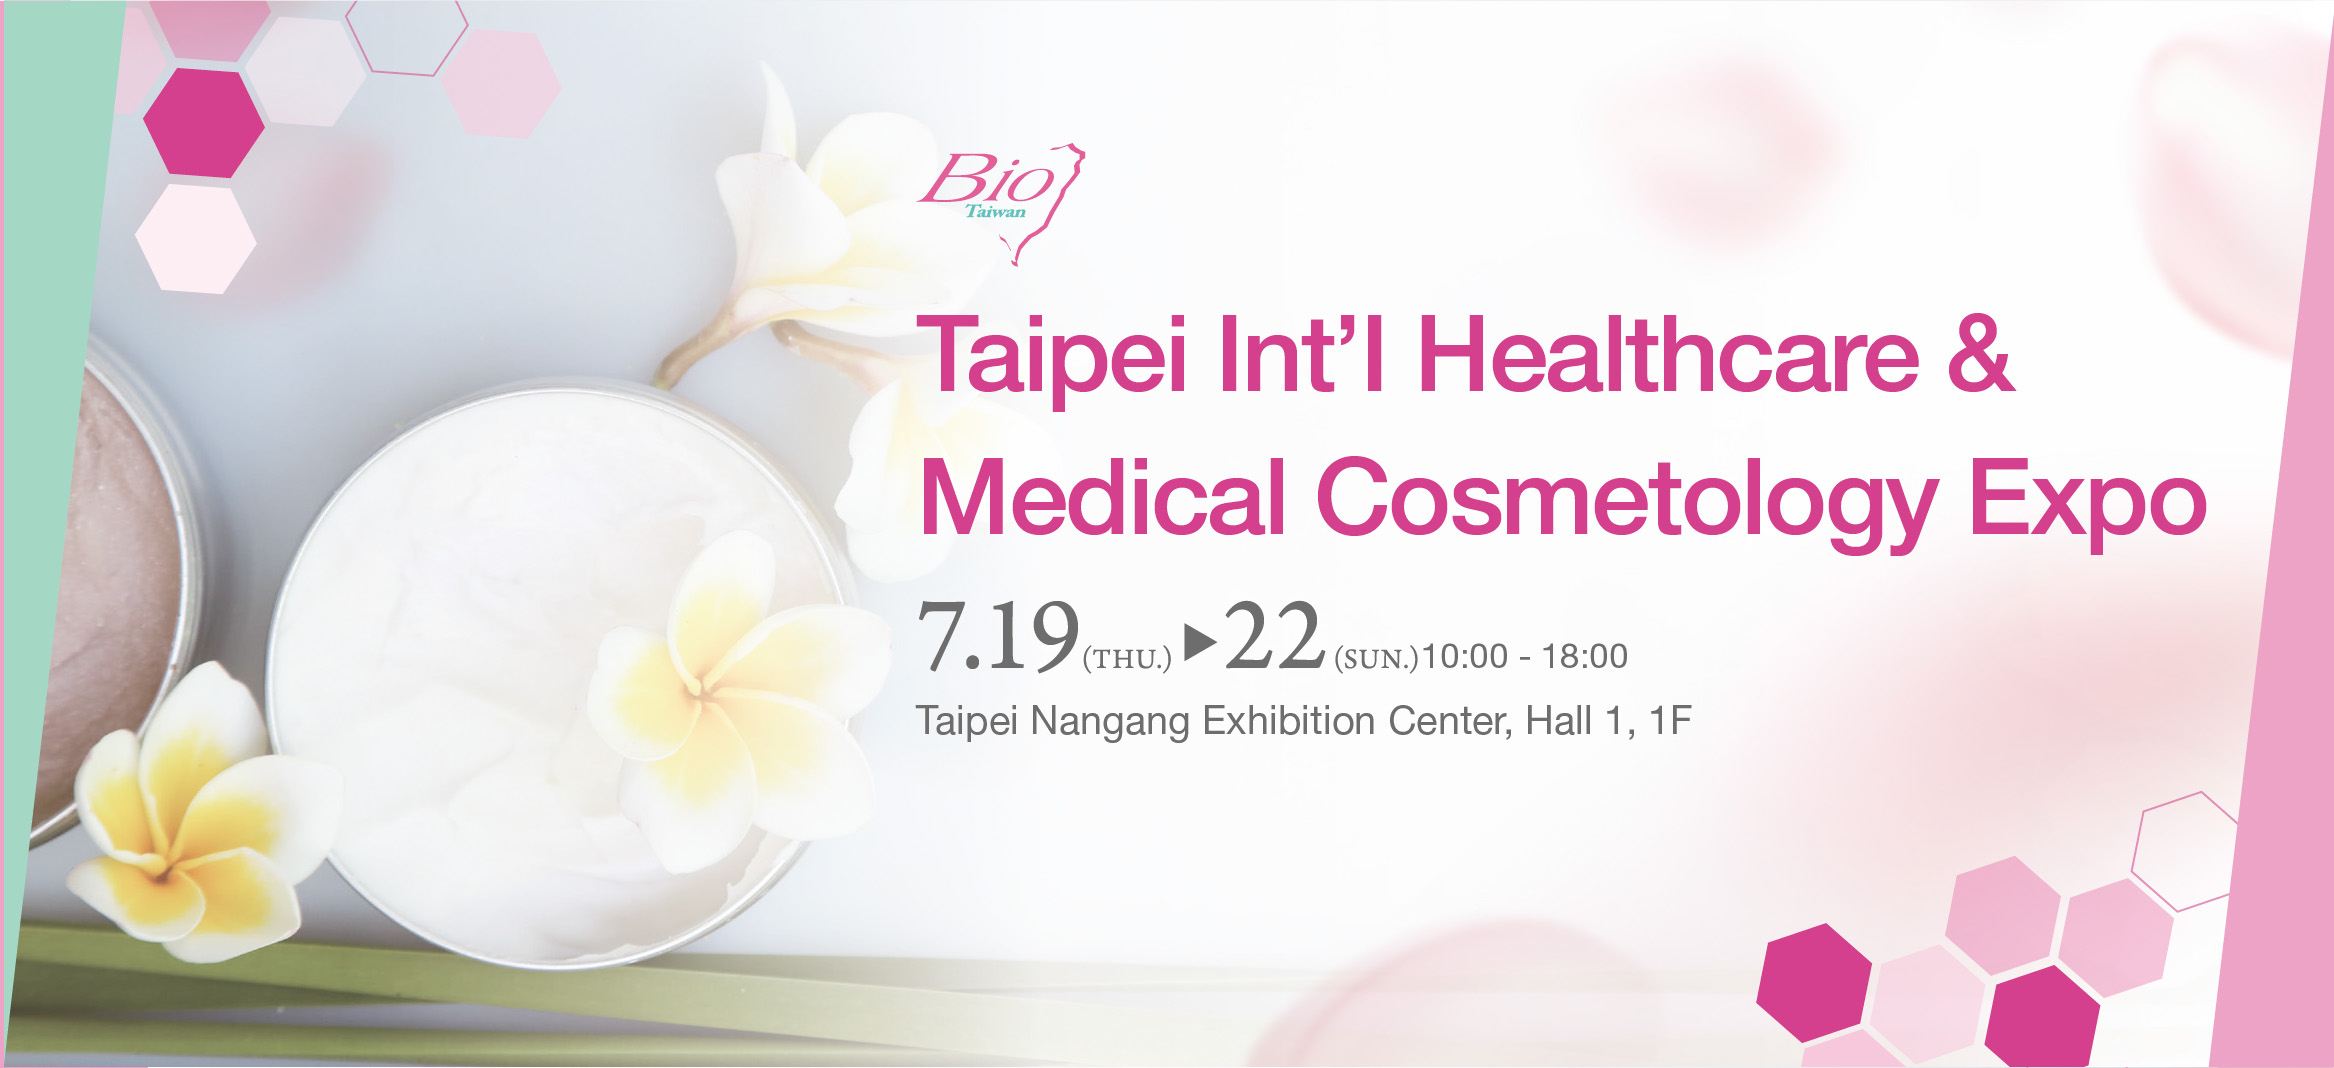 Taipei Int'l Healthcare & Medical Cosmetology Expo